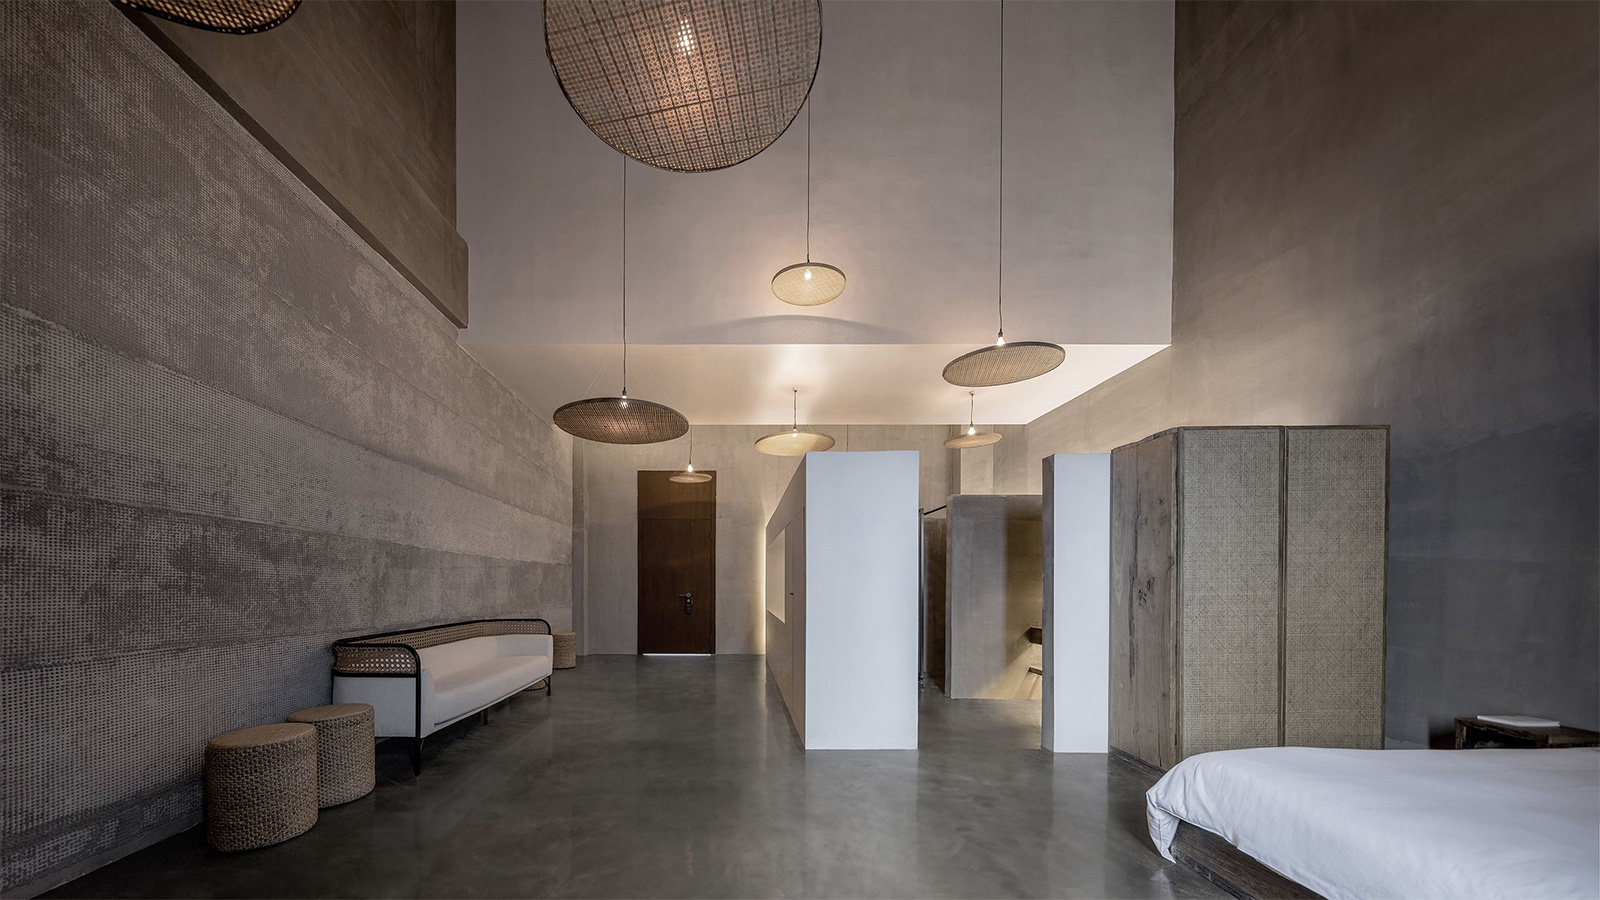 Studio 10 conjures serene interiors of Chinese holiday home Light and Shadow